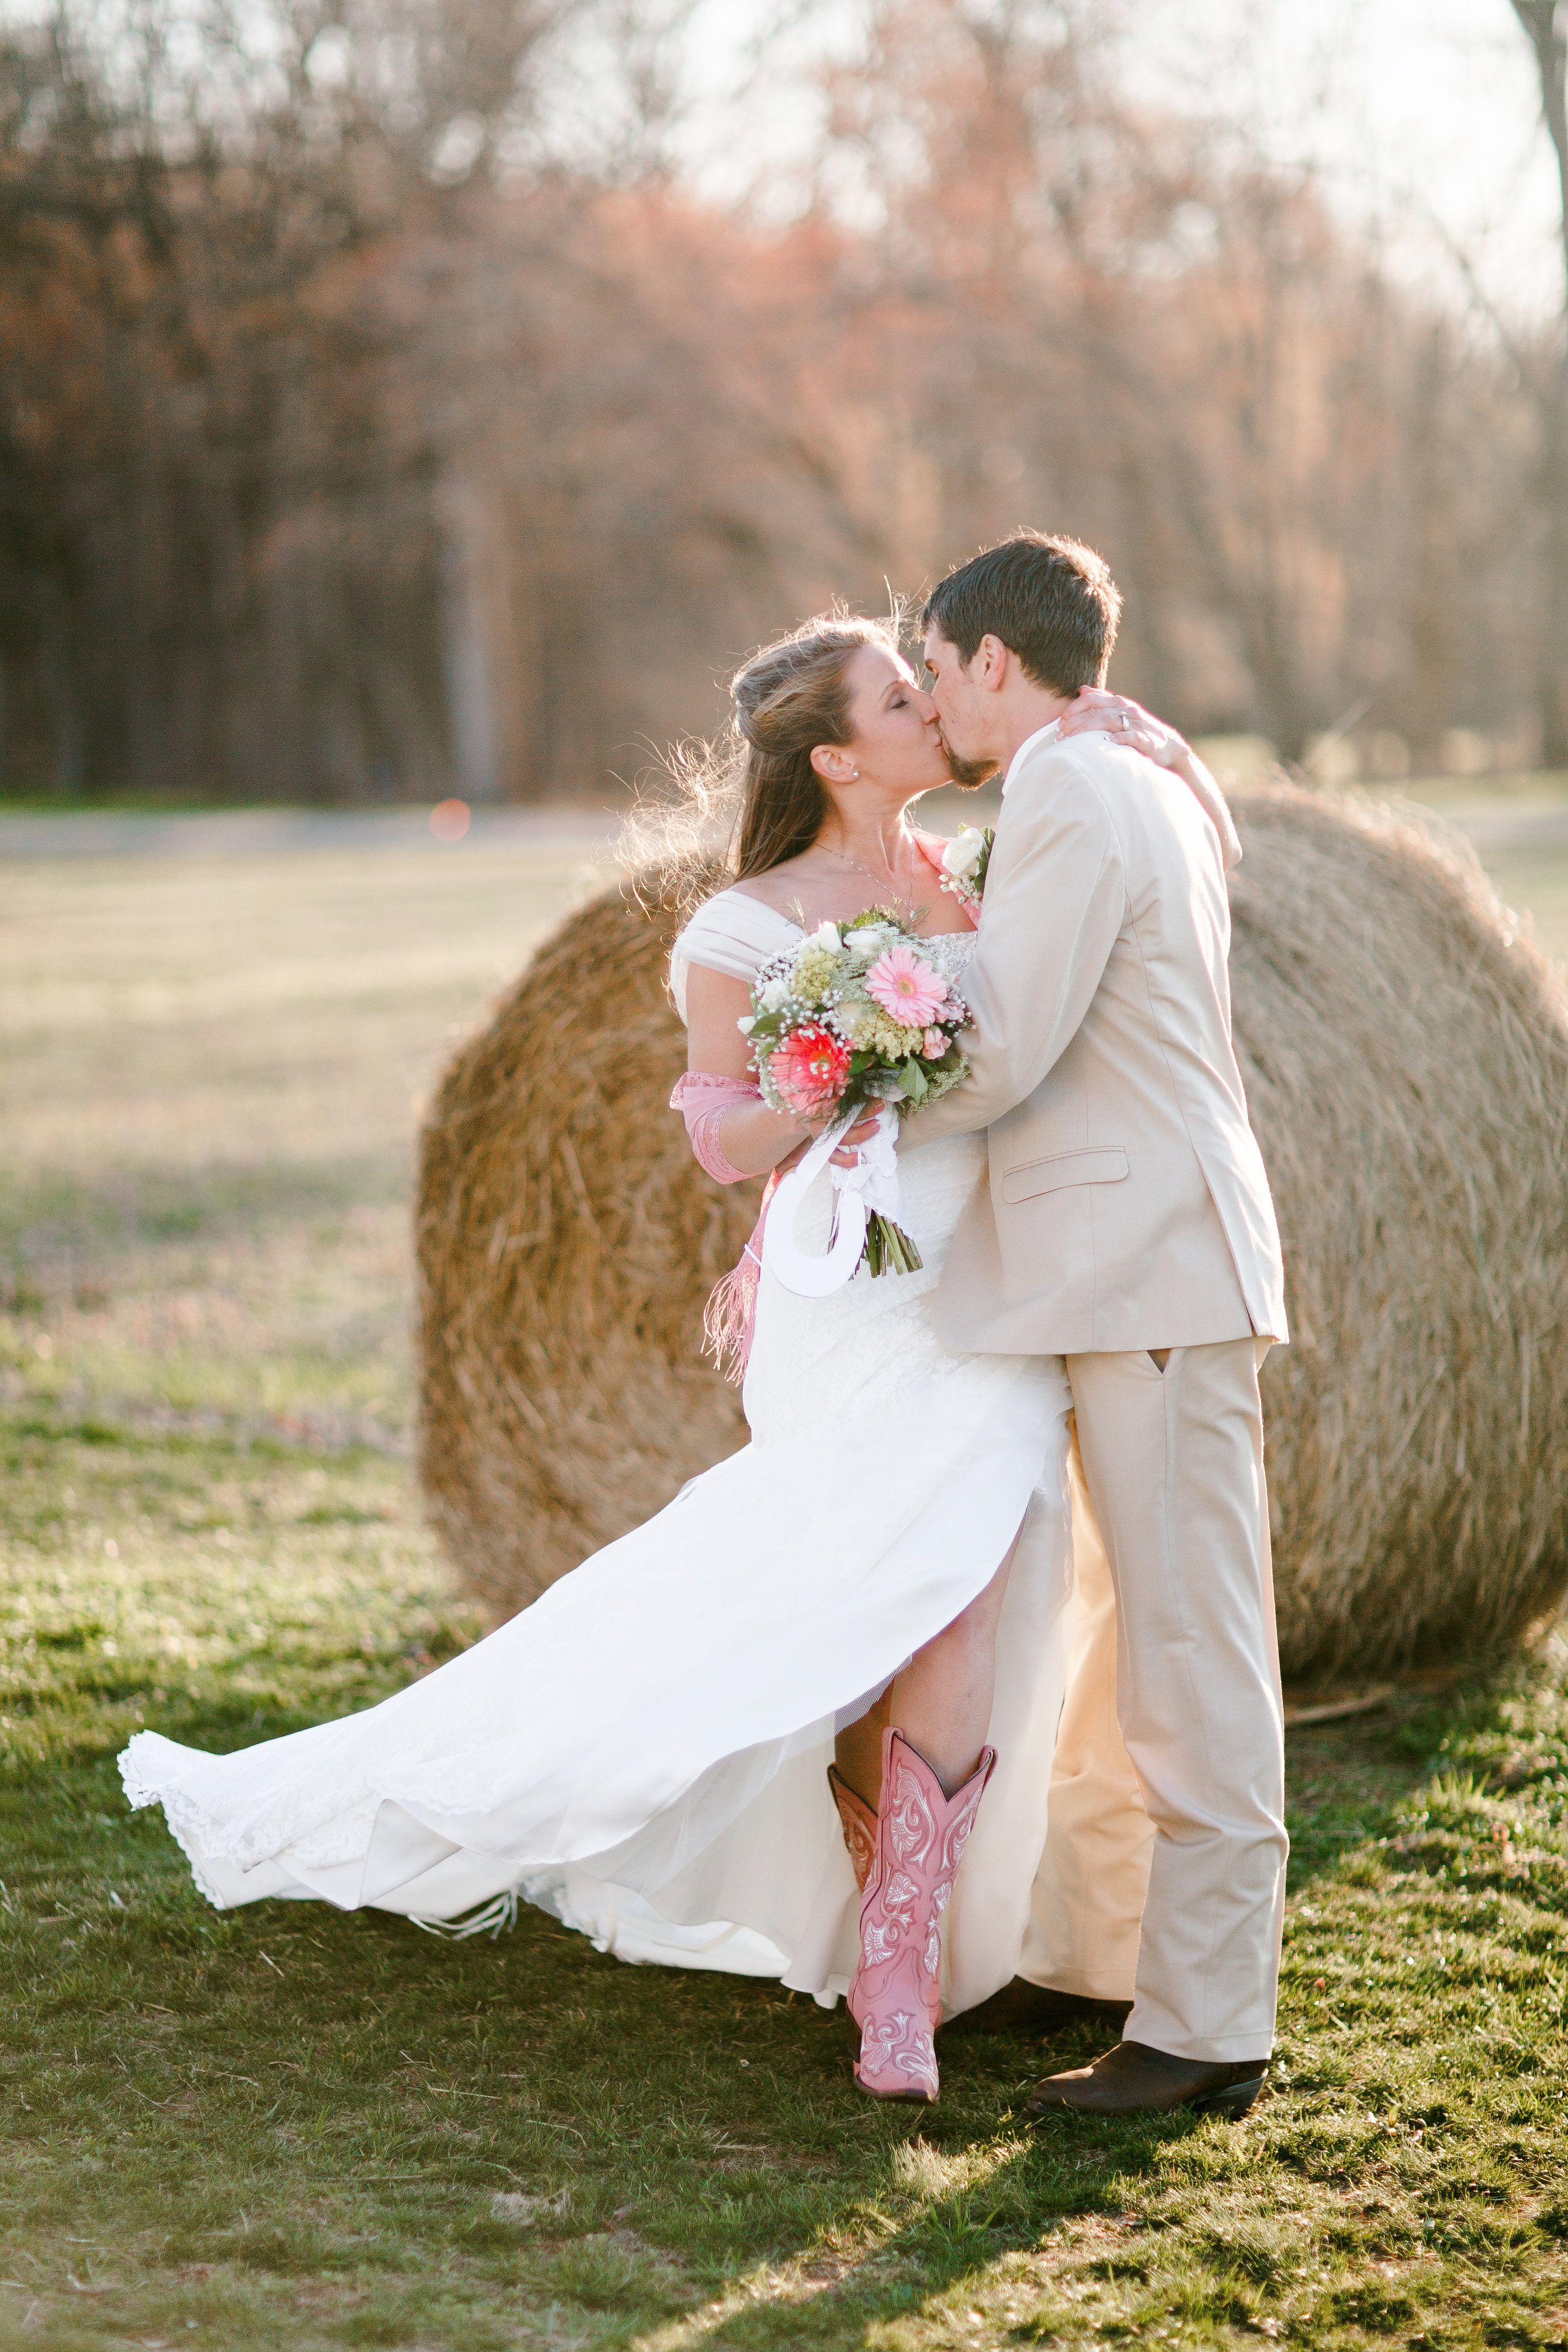 One of our first spring weddings of the season-love those pink cowgirl boots!  www.fairviewfarmevents.com